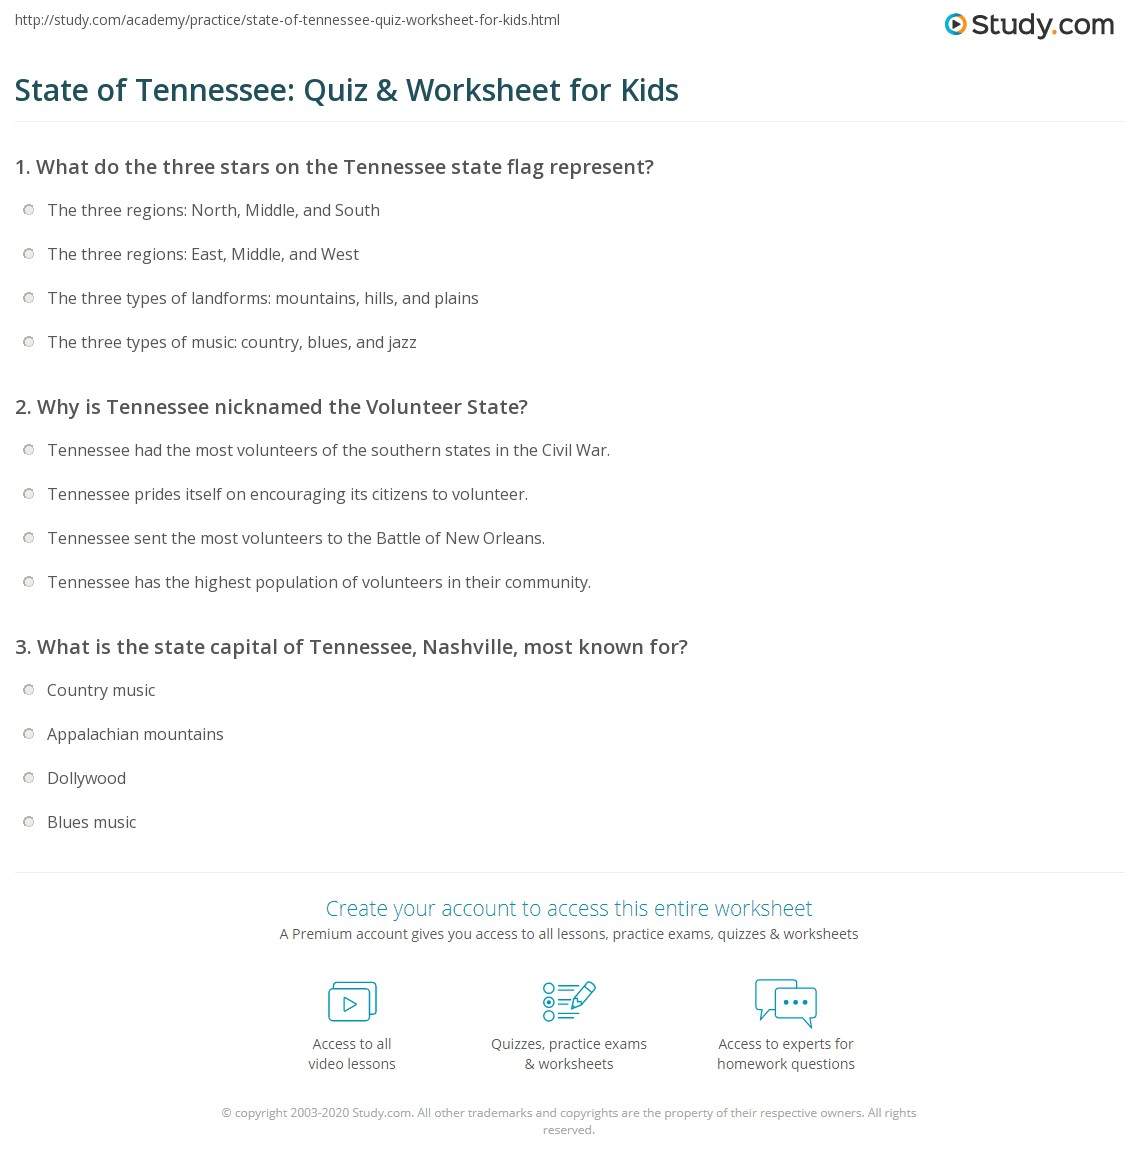 Uncategorized Child Support Worksheet Tn state of tennessee quiz worksheet for kids study com print facts lesson worksheet